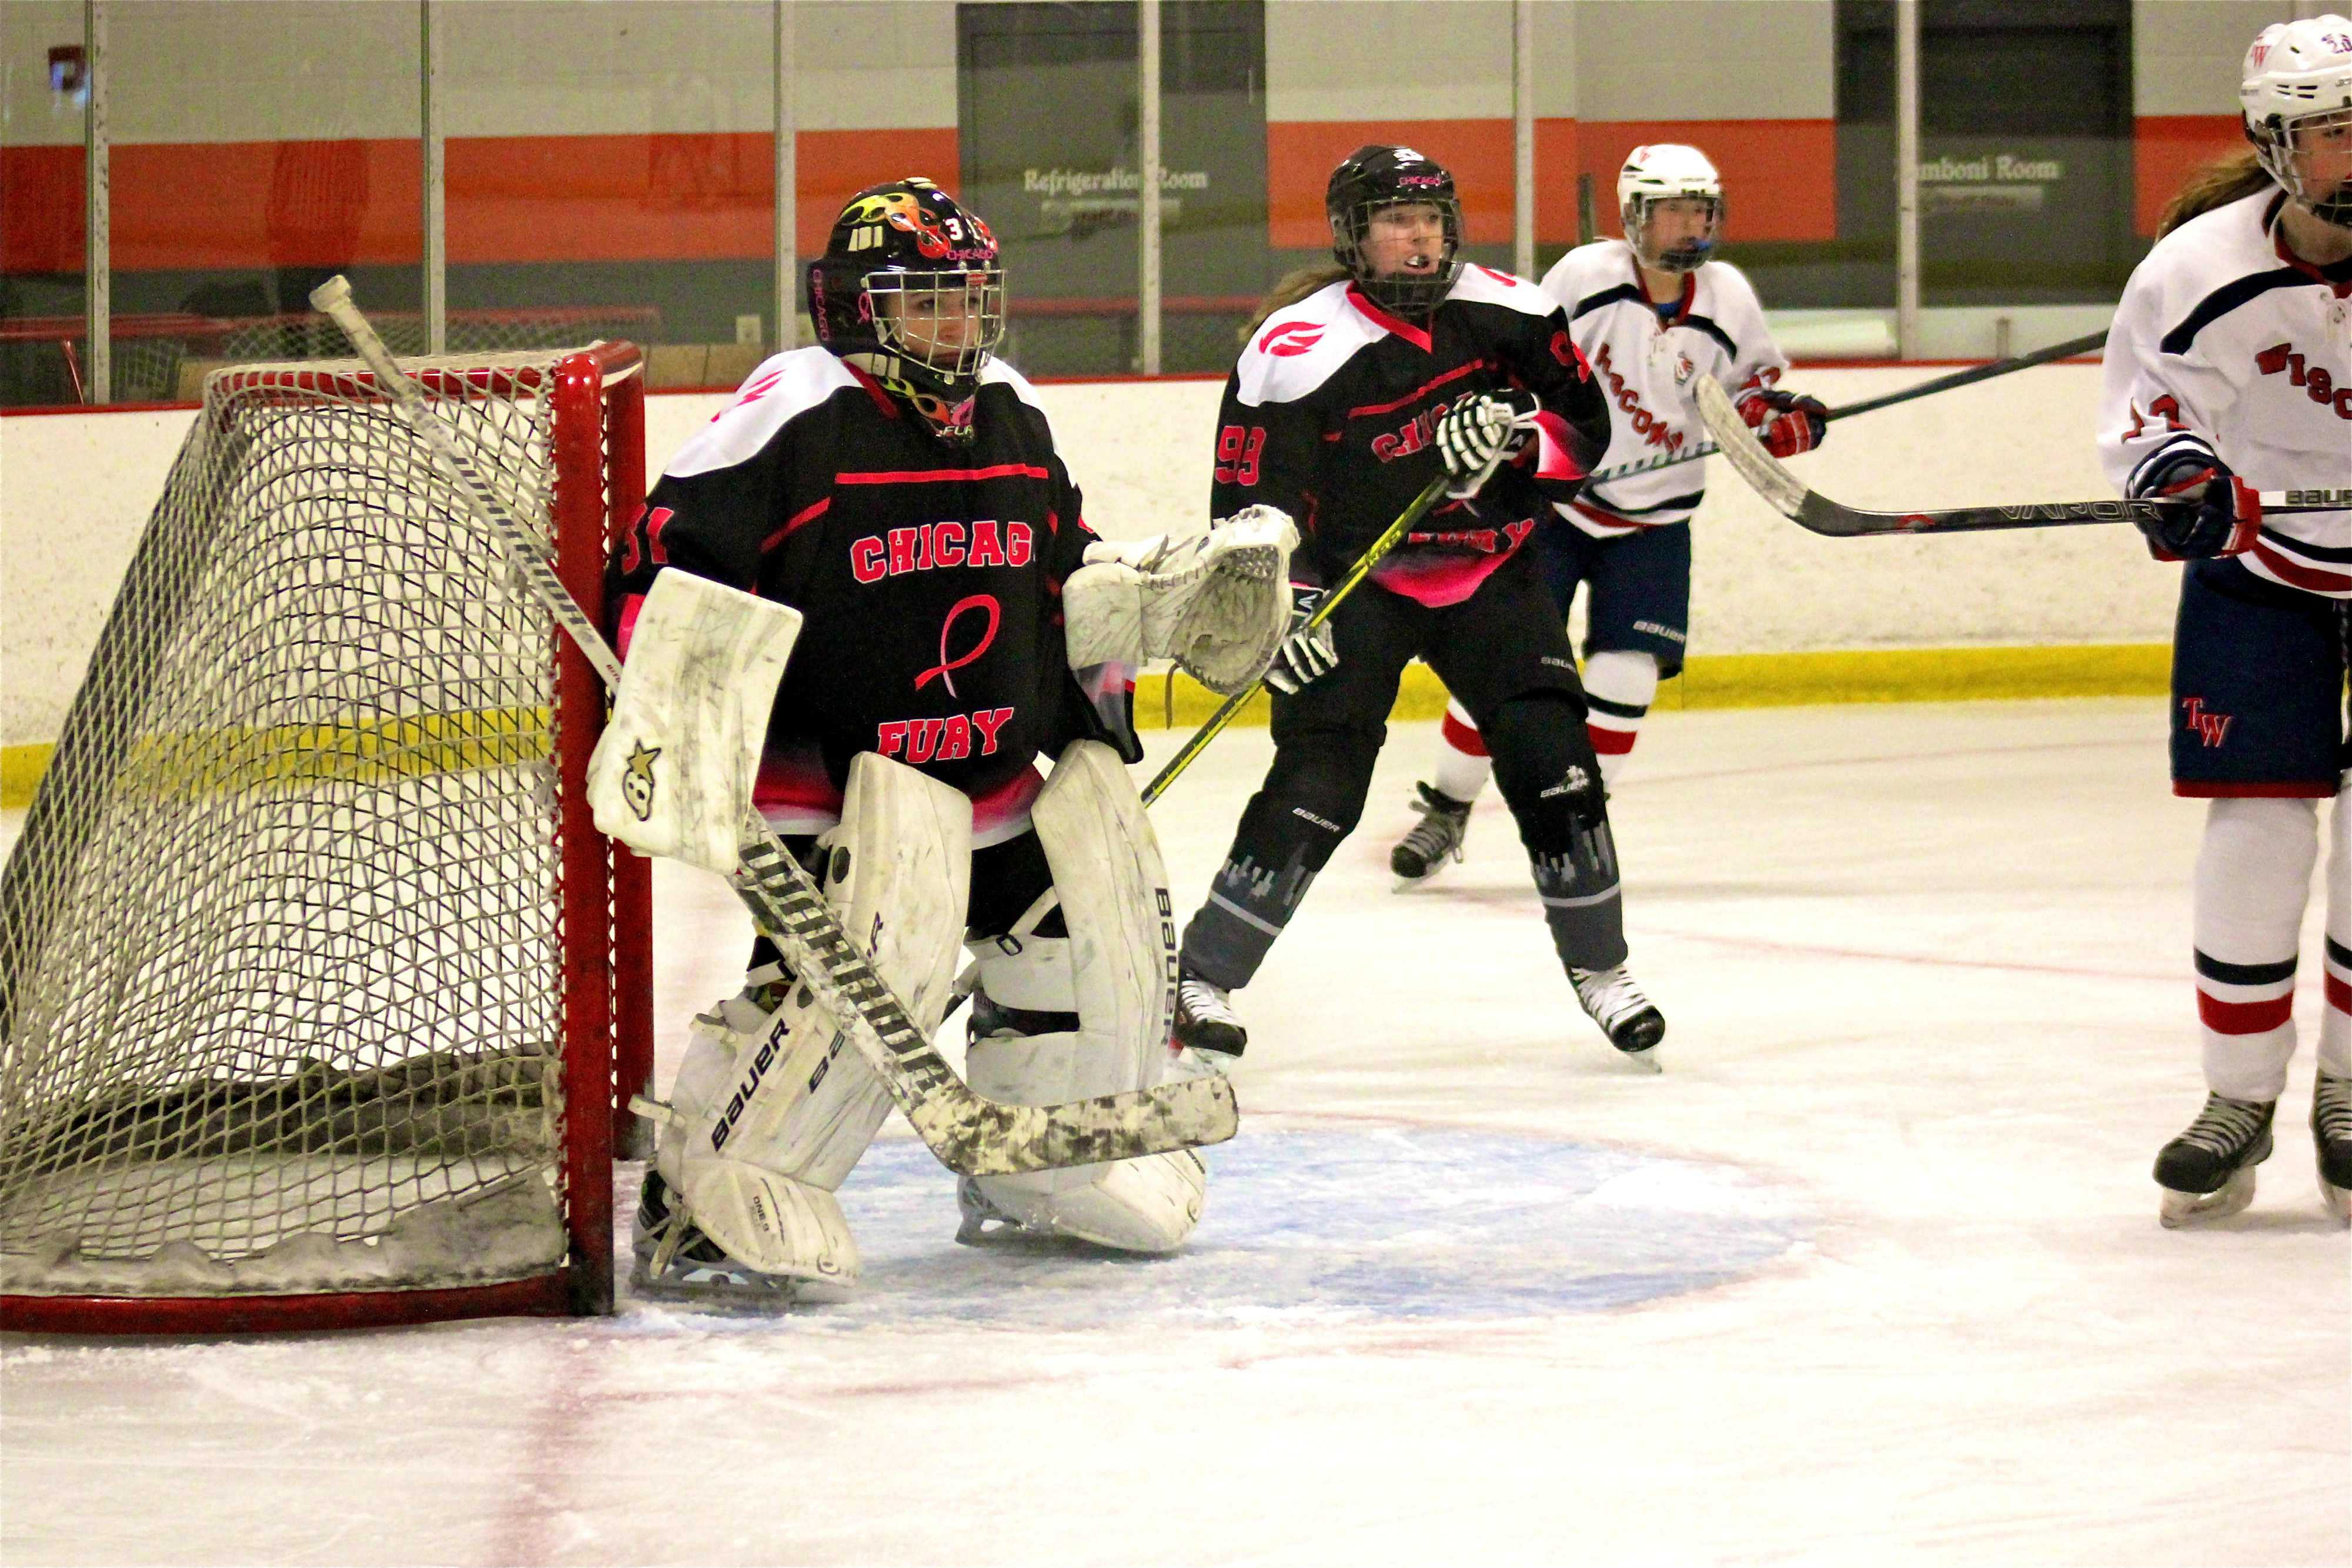 Hockey goalie, junior Emily Wissemes, started playing hockey at 11 years old. Wissemes currently plays for the Chicago Fury, and had a shutout against Team Wisconsin on Nov. 1. Photo courtesy of Stella Wissemes.